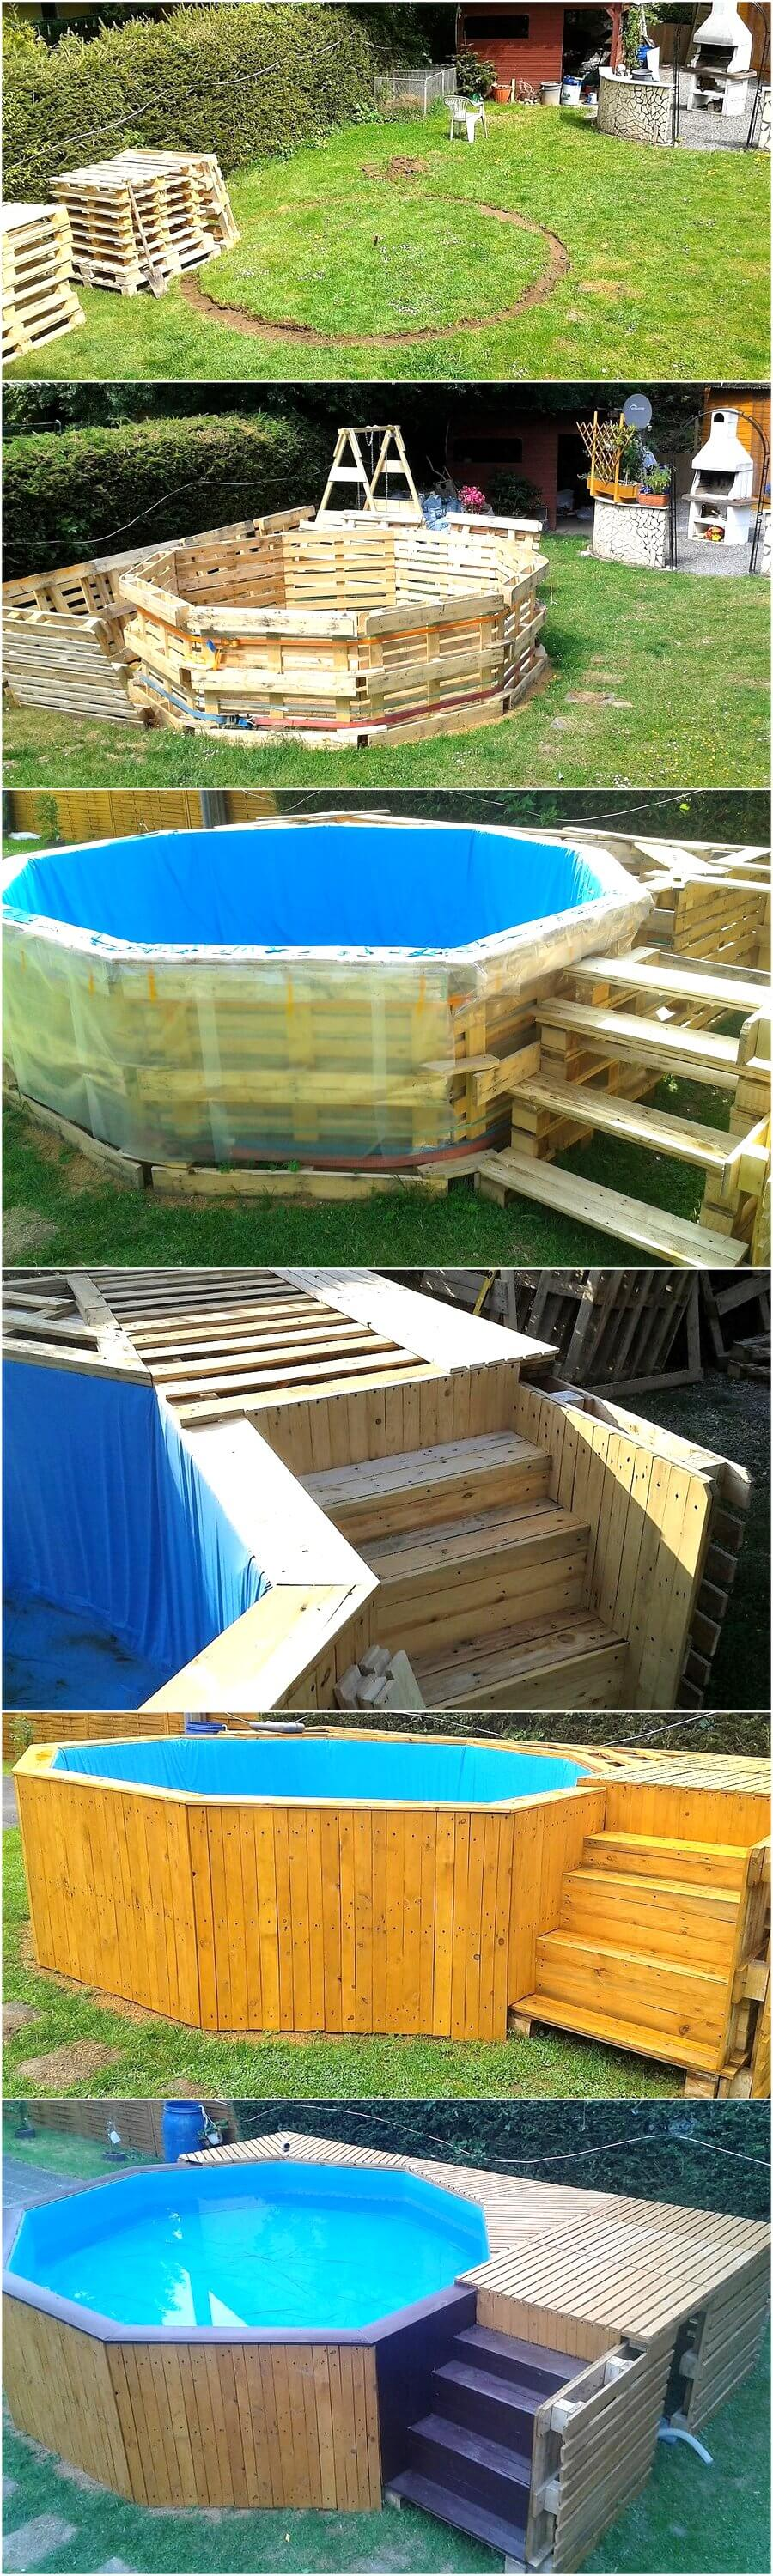 Diy reclaimed wood pallets garden pool plan pallet ideas for Garden pool made from pallets